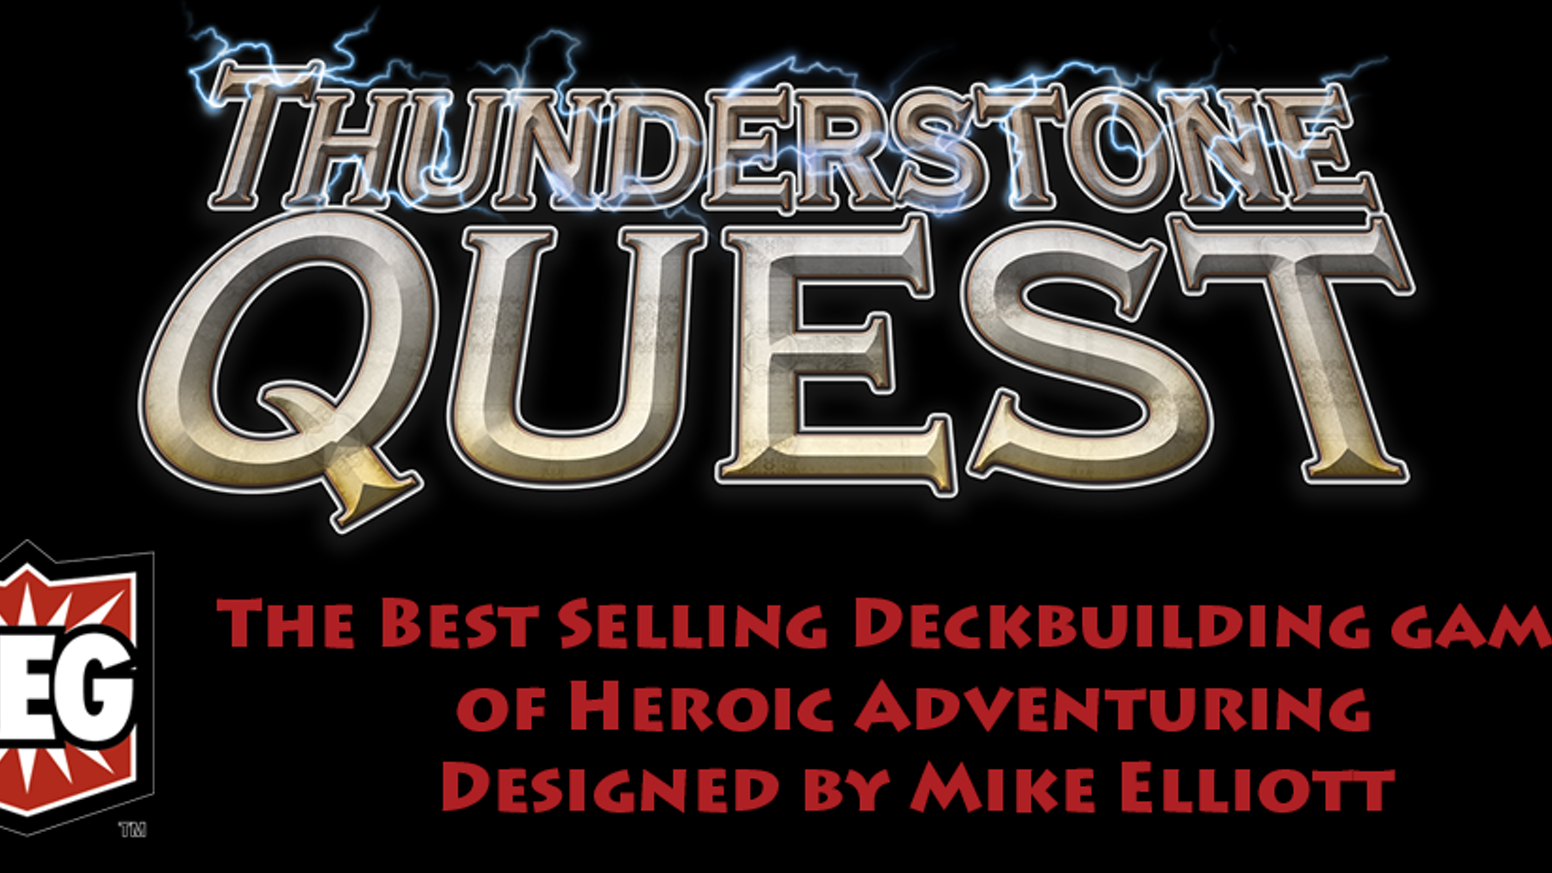 The new version of Mike Elliott's best-selling Thunderstone deckbuilding game.